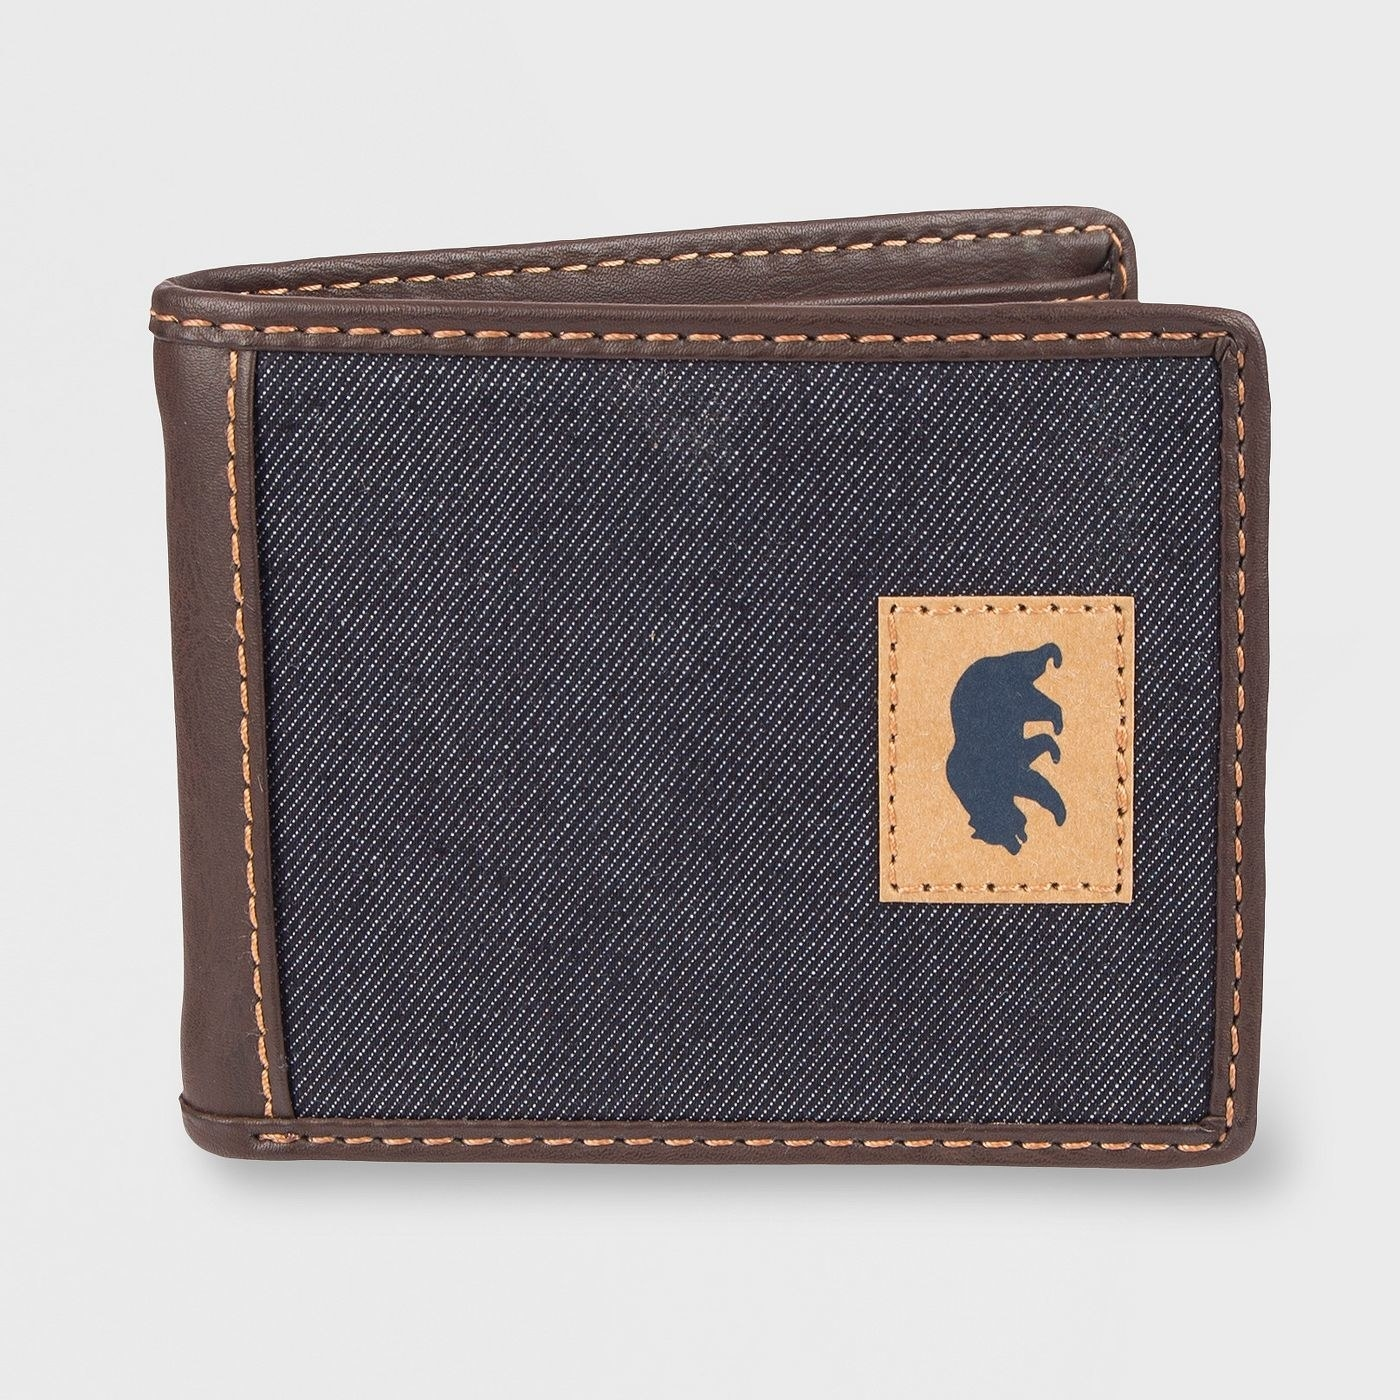 The slimfold wallet